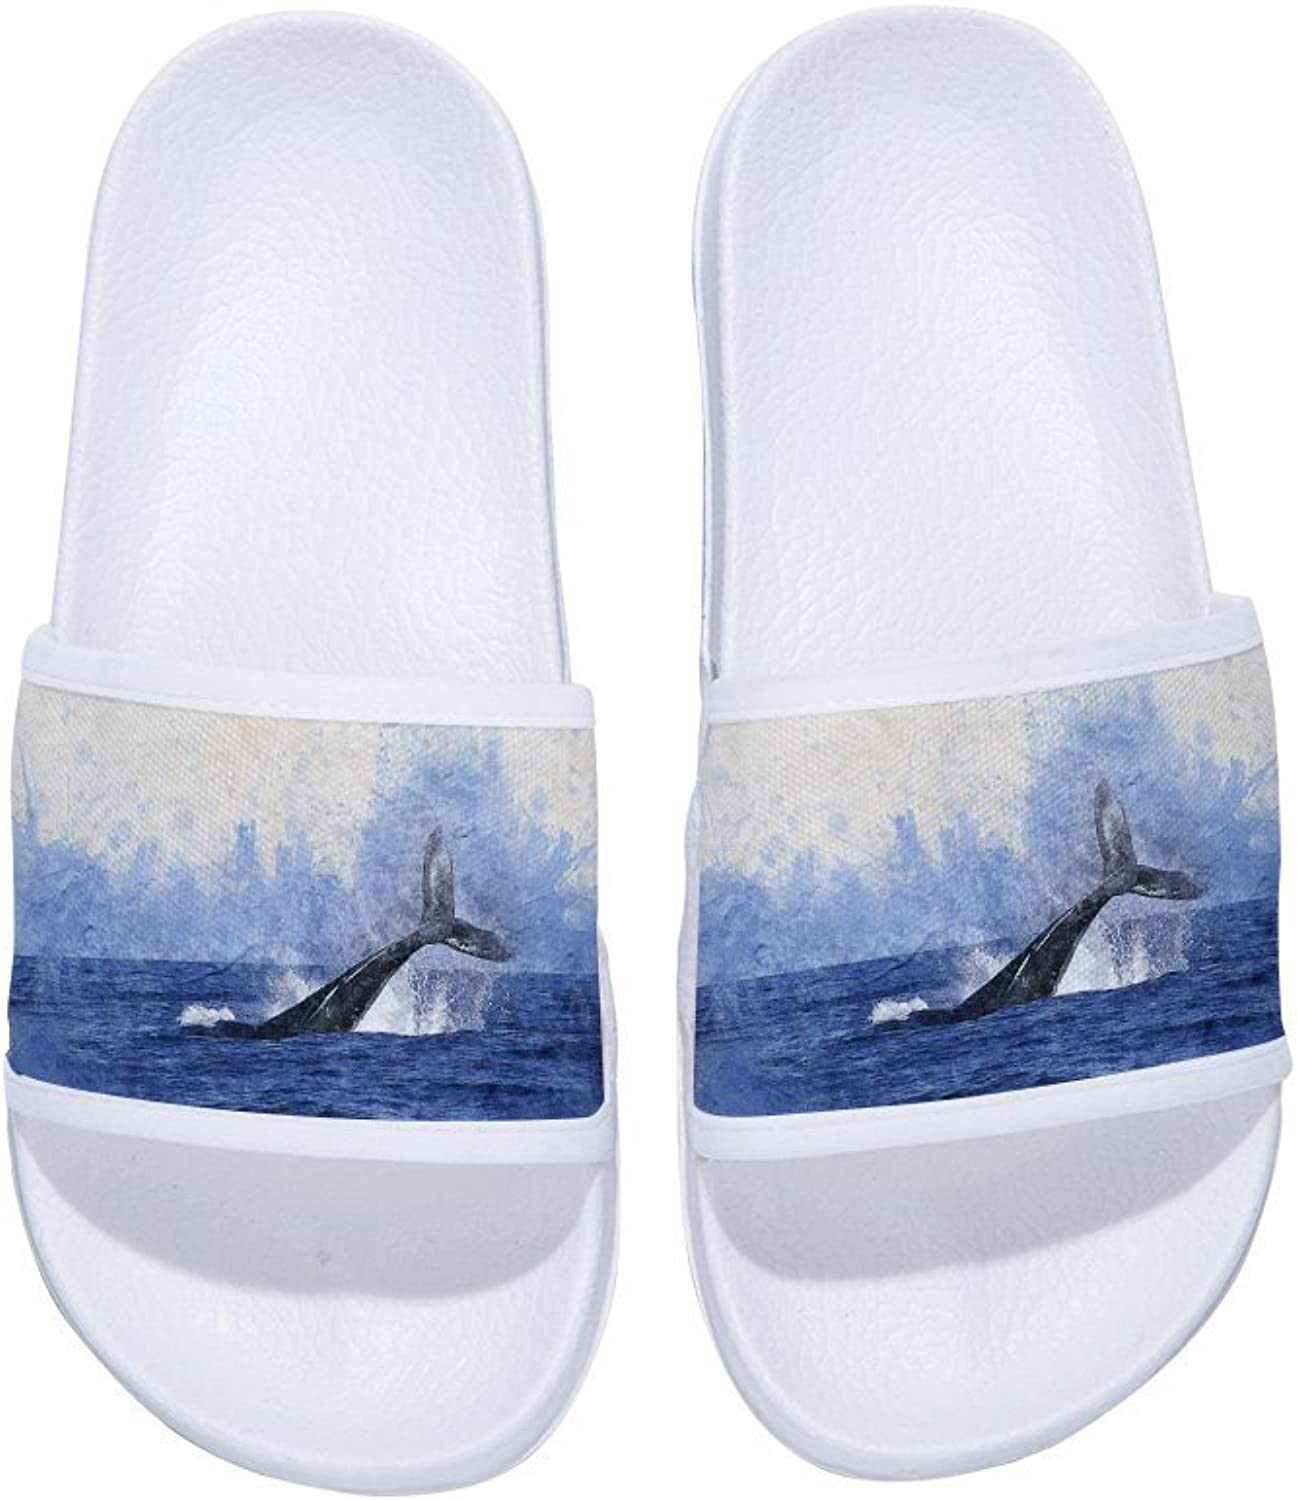 Buteri Whale into The Sea Painting Slippers Non-Slip Quick-Drying Slippers for Women Kids Men Kids